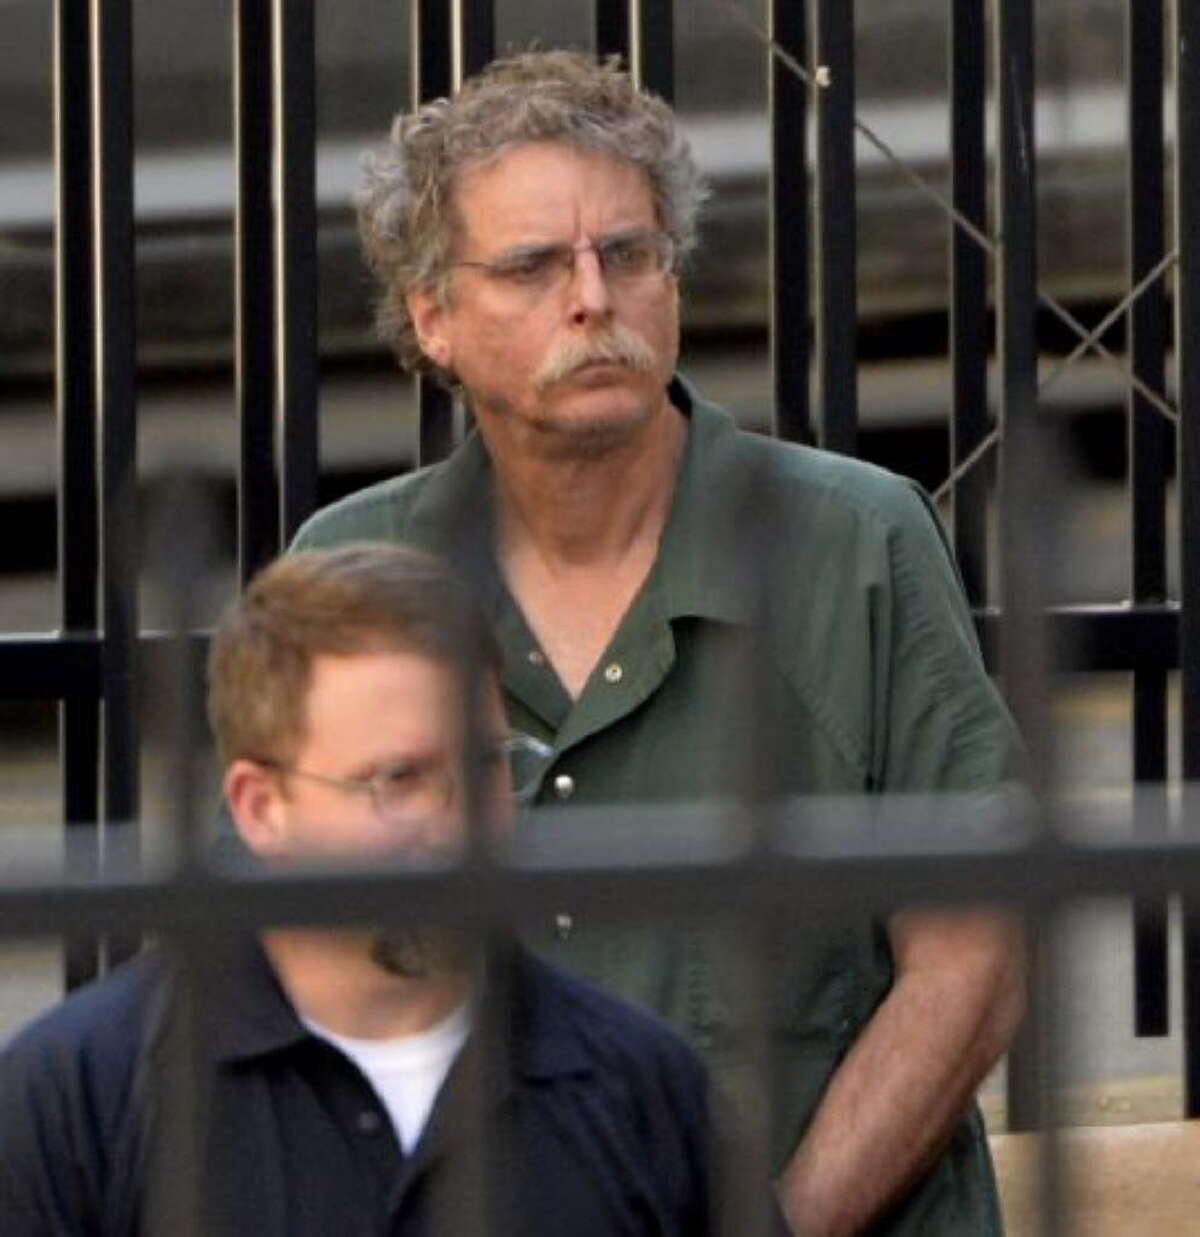 Eric J. Feight of Stockport, N.Y., leaves the Federal Courthouse in shackles after his bail was revoked Thursday afternoon, June 20, 2013, in Albany, N.Y. (Skip Dickstein/Times Union)